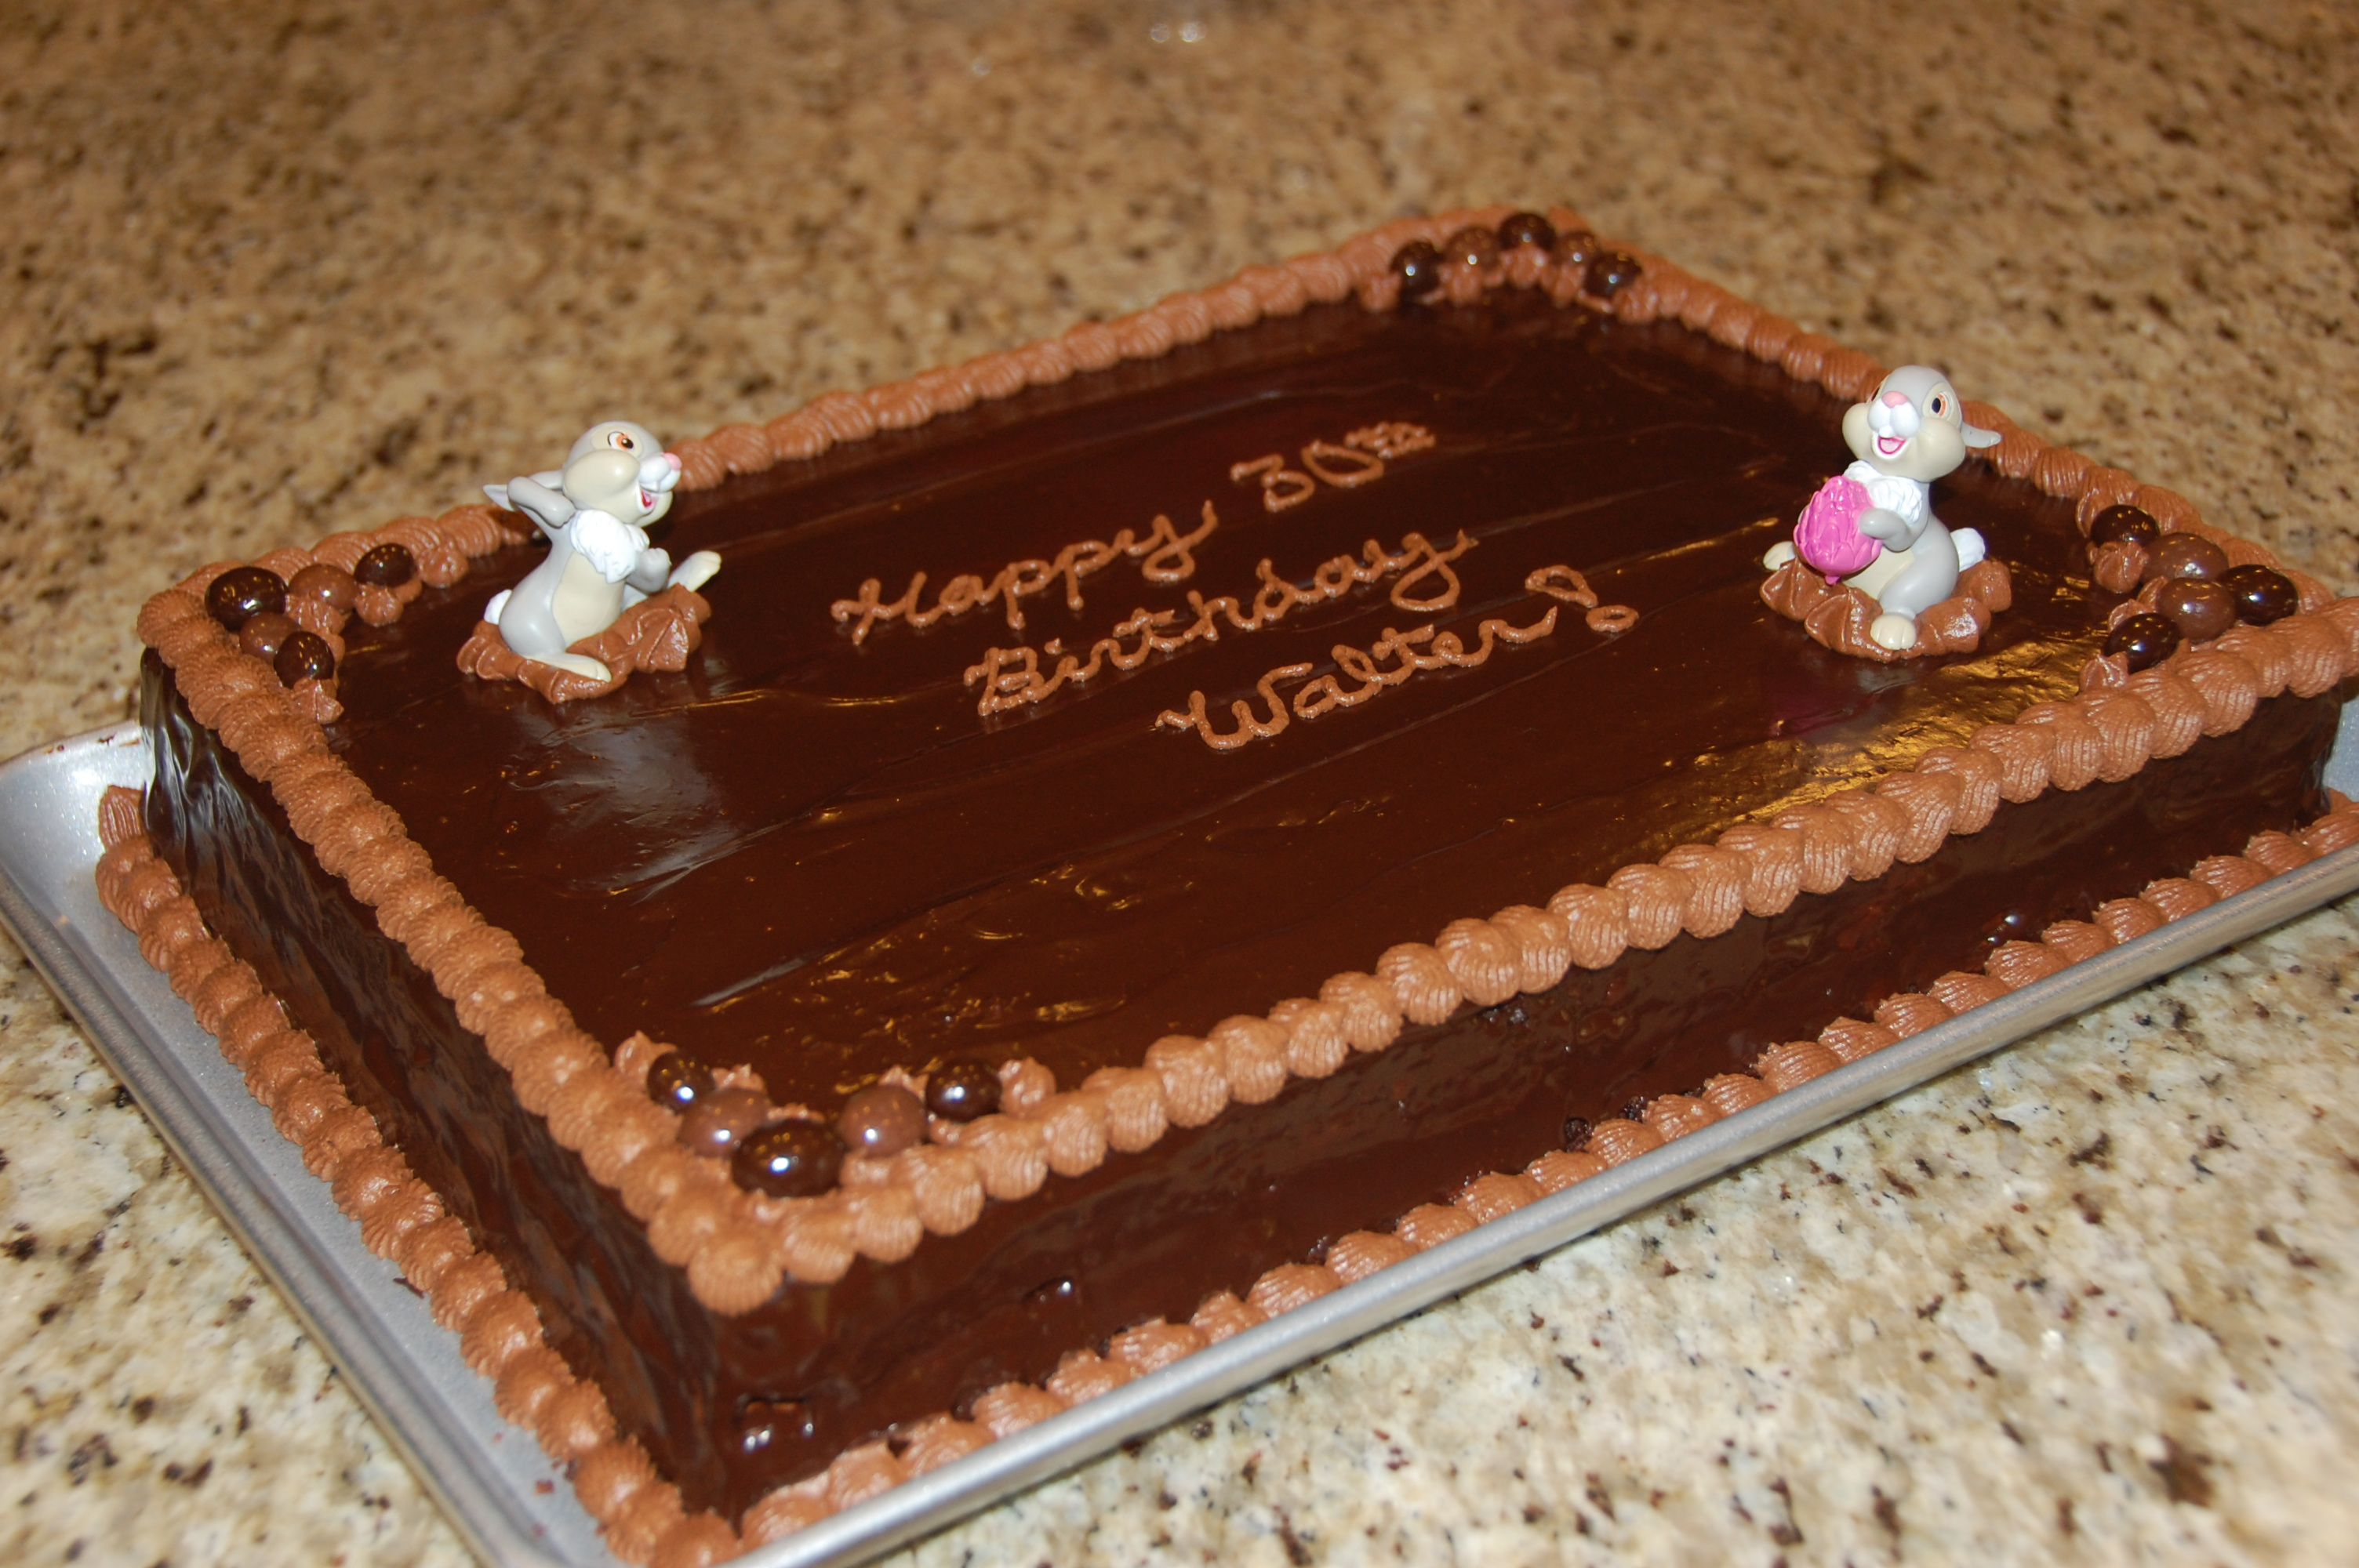 Birthday Cake Photos Chocolate Ganache : Dark Chocolate Ganache Cake (and birthday sheet cake ...